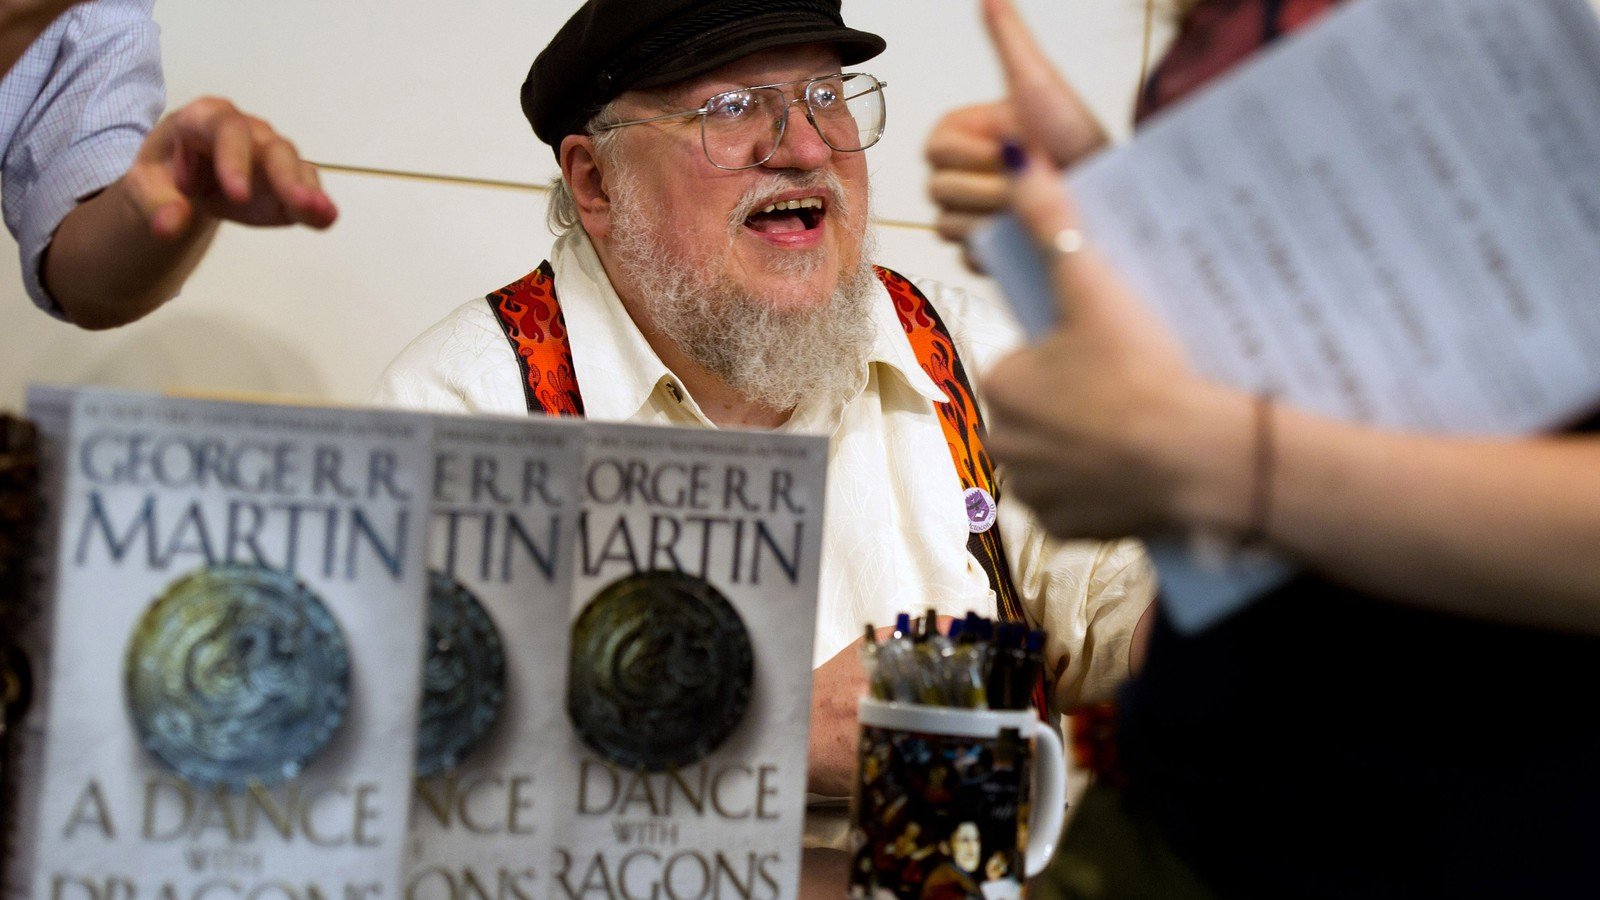 George RR Martin have so much Work Stress apart from the Book